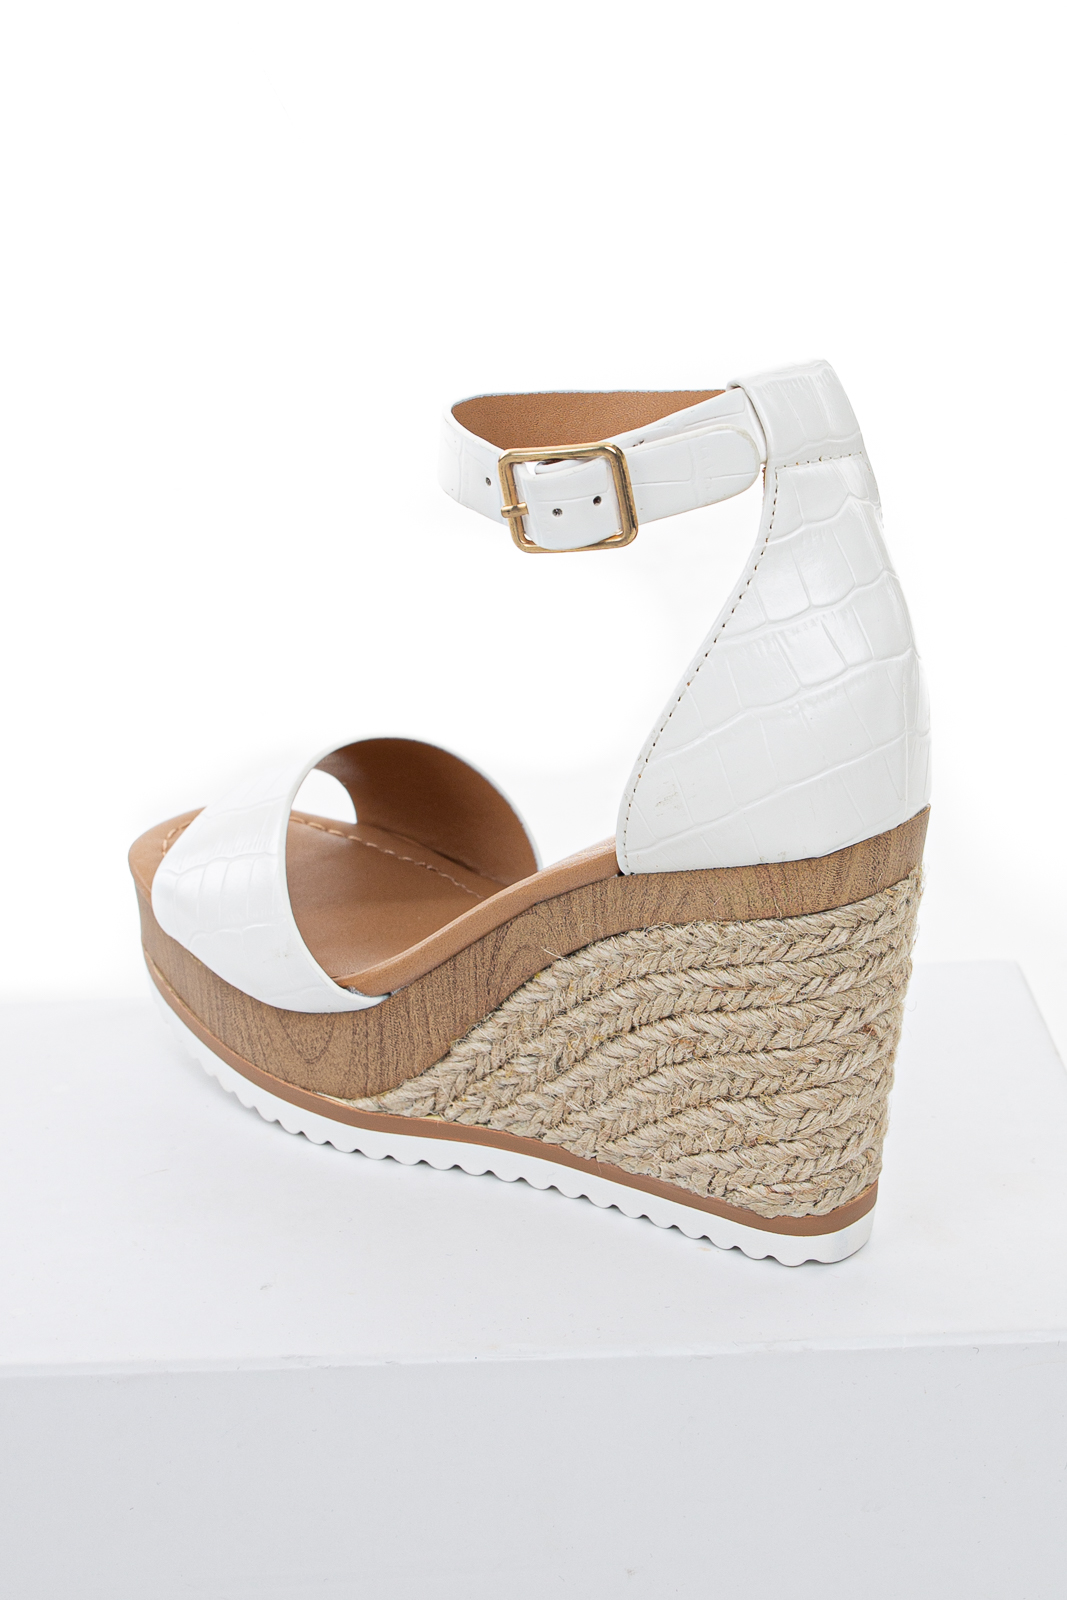 Off White Crocodile Texture Faux Leather Espadrille Wedges